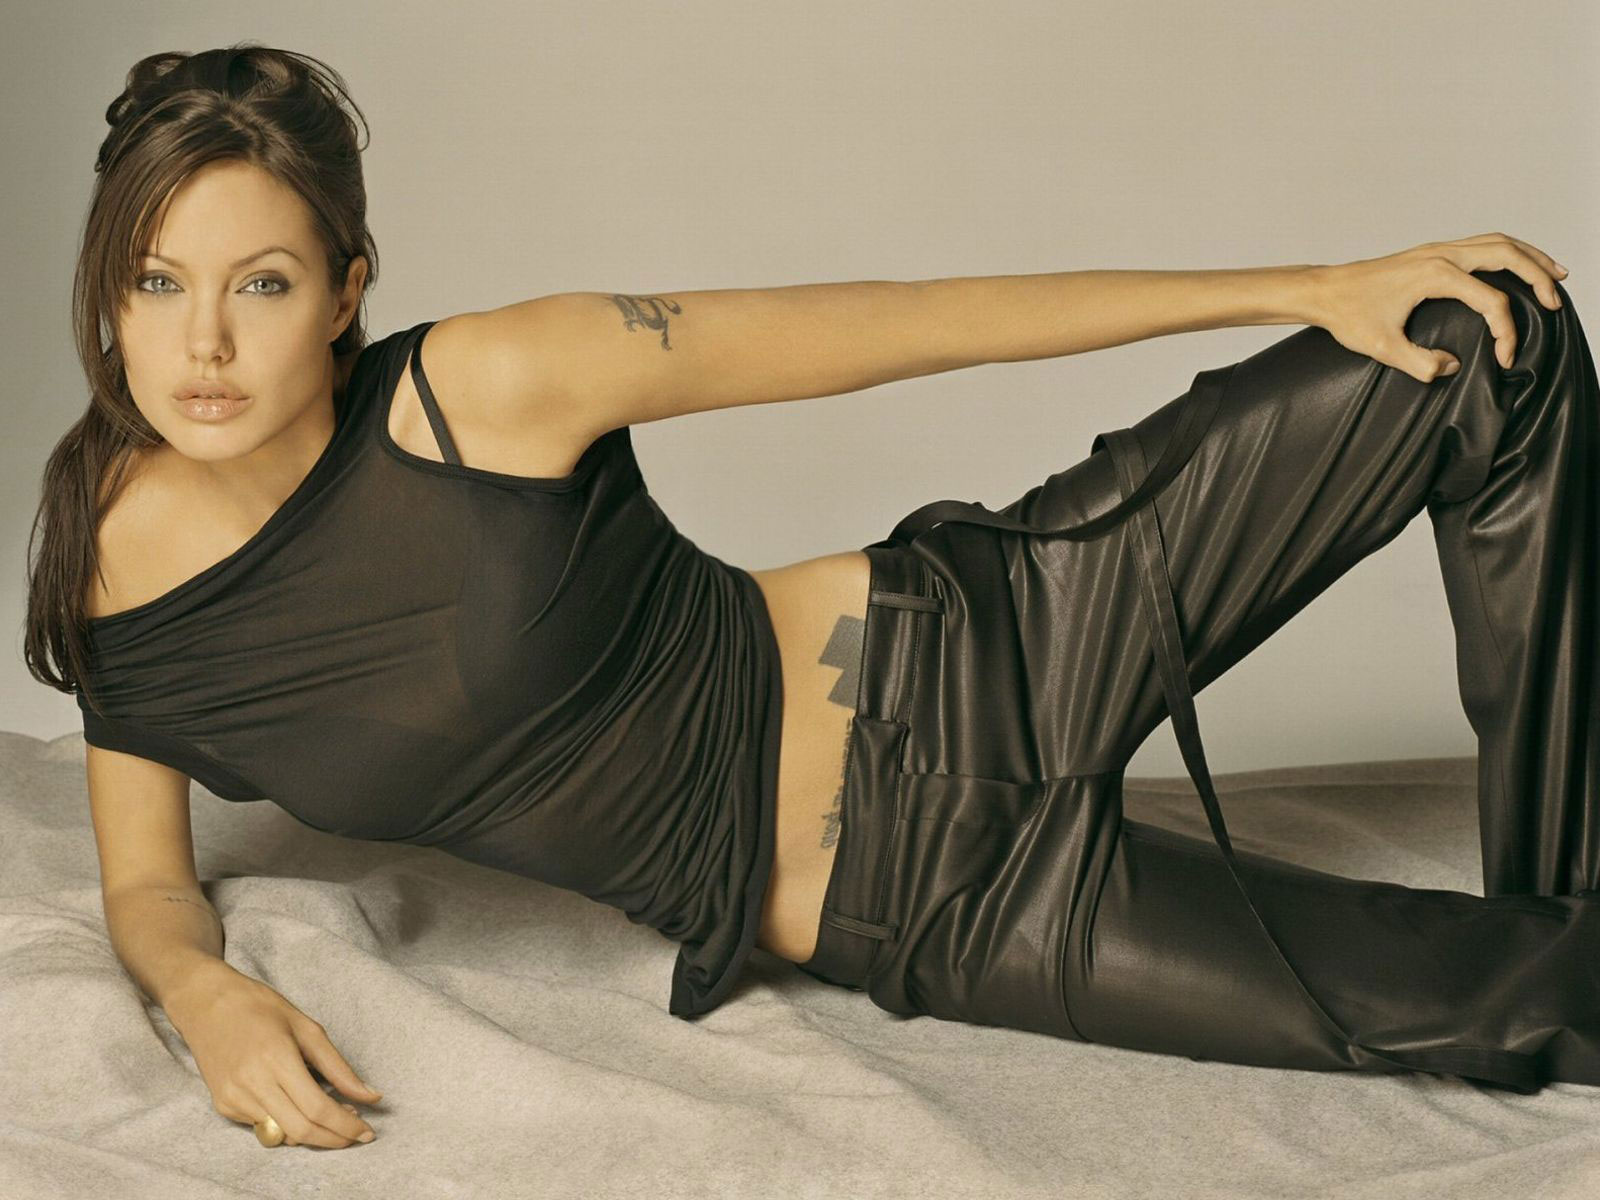 Angelina Jolie sleeping beds- Hot actress bold pics sexy images of hollywood seducing celebrity